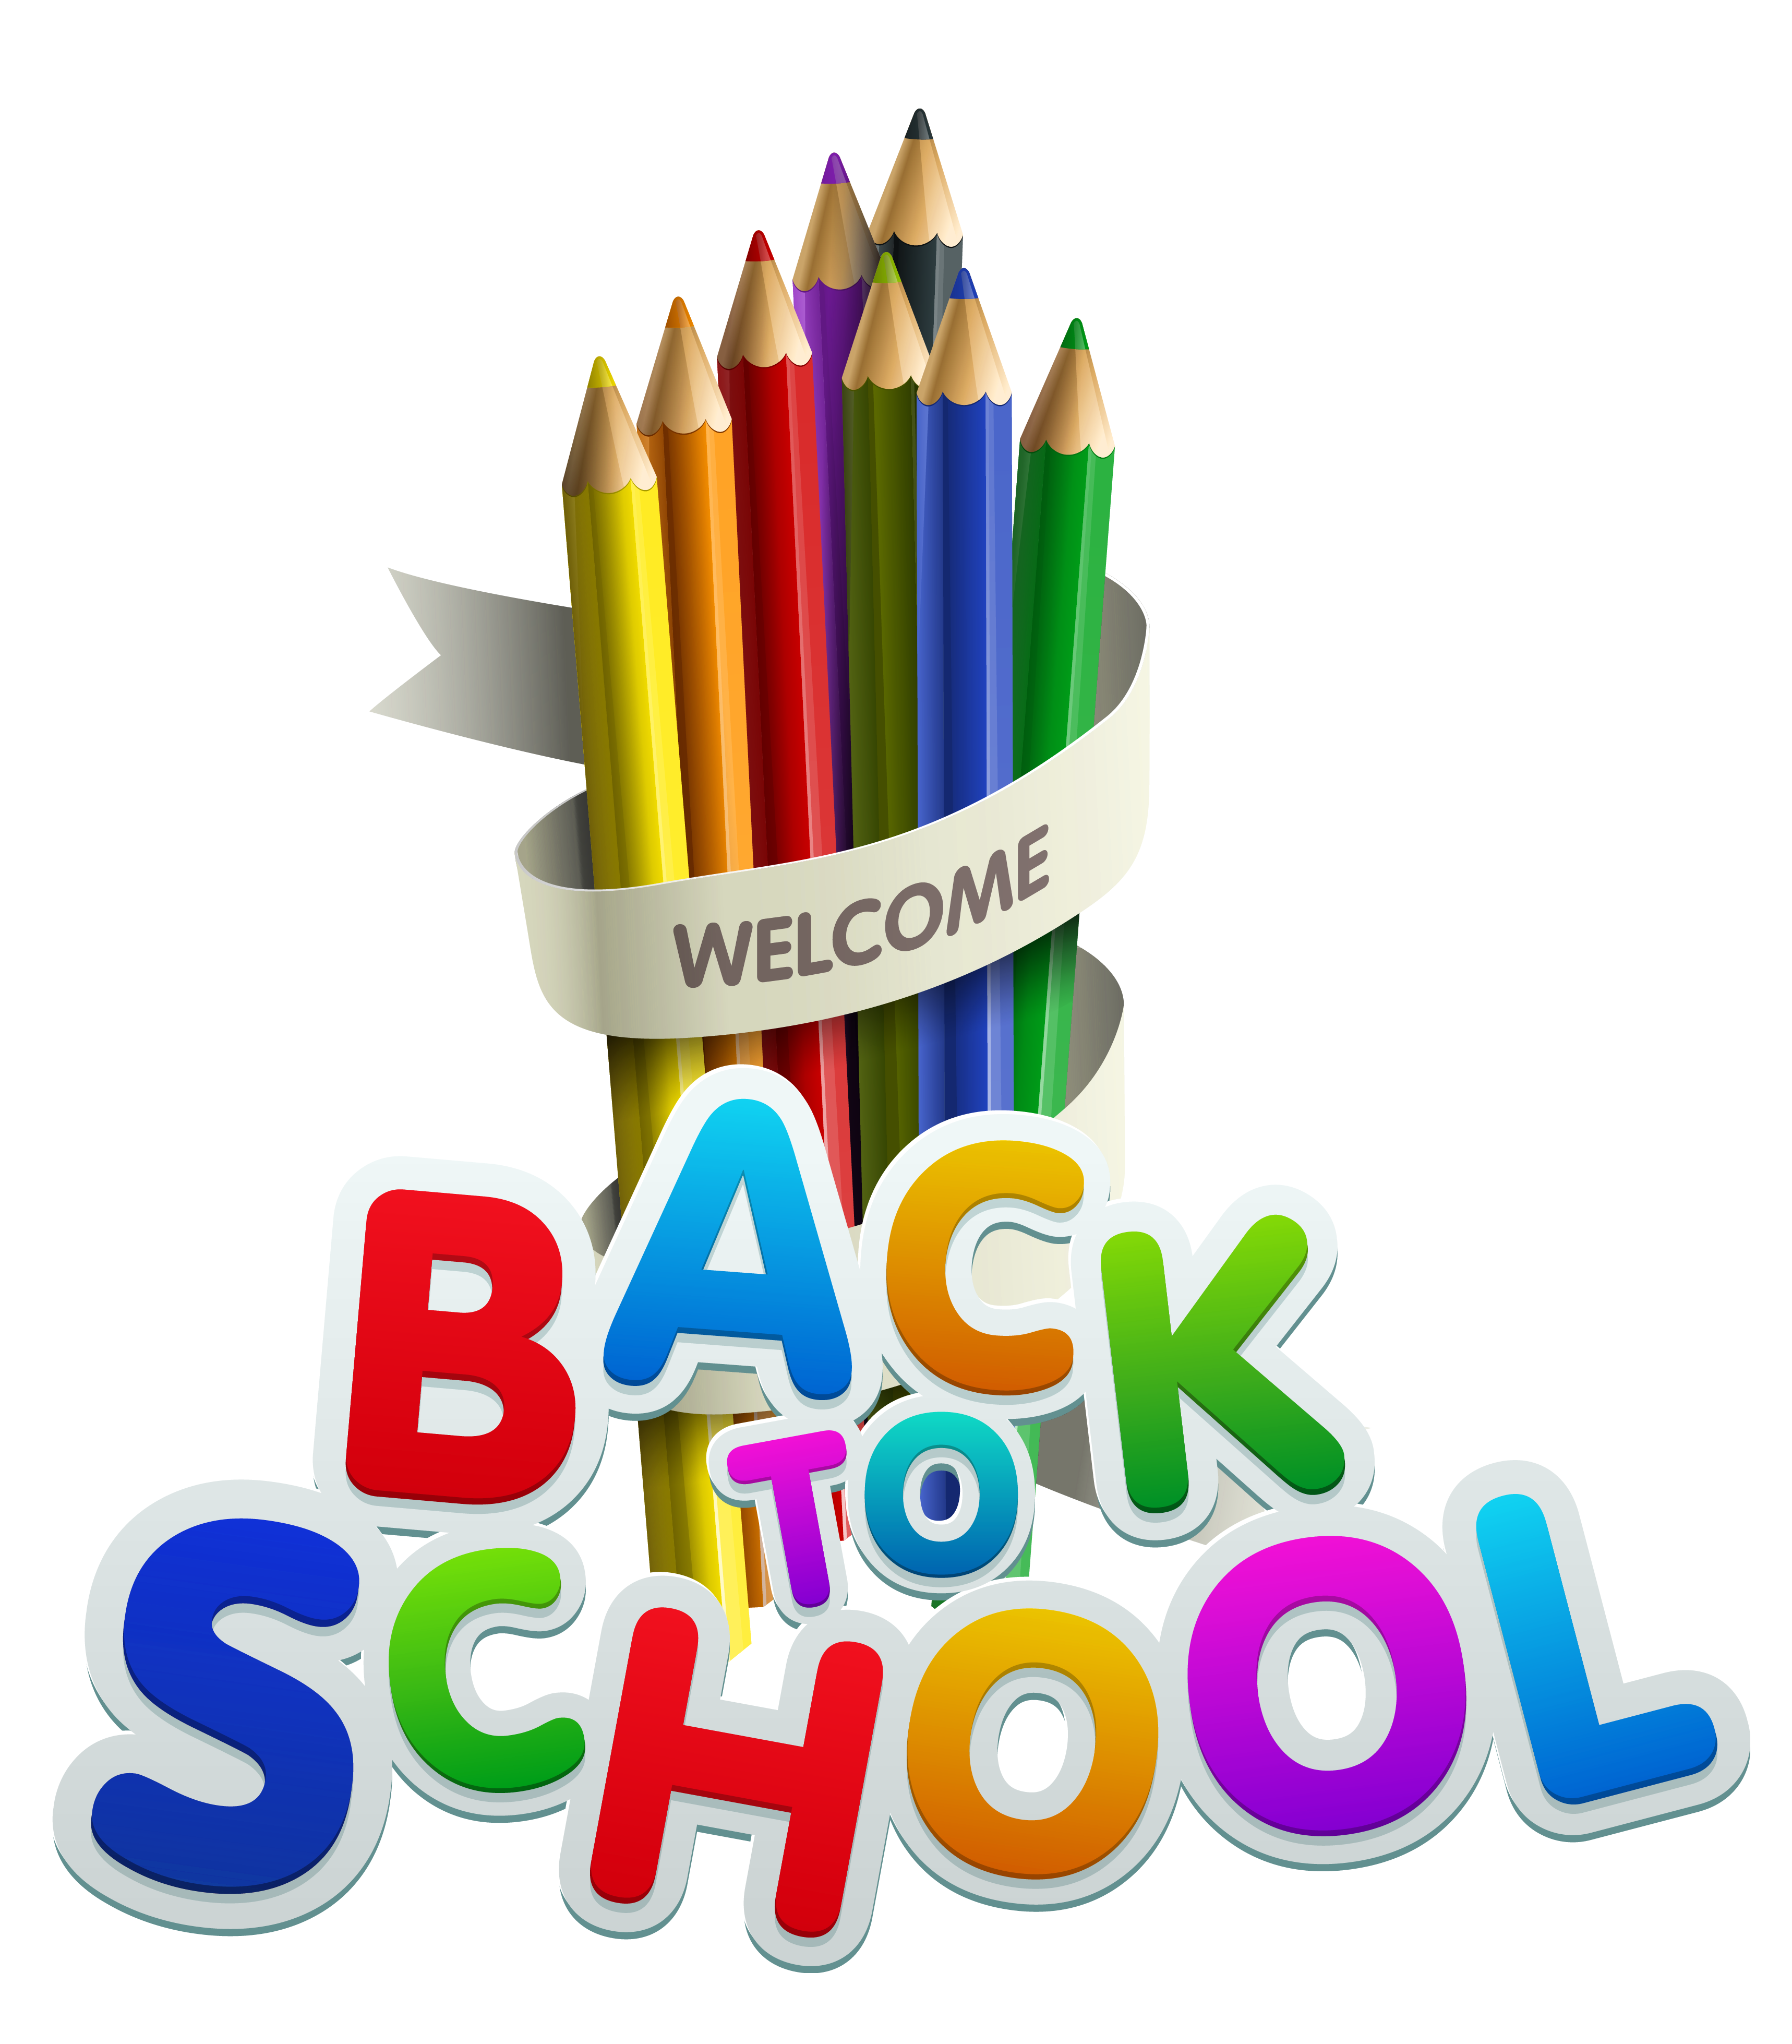 Welcome Back To School Color Pencils Cli-Welcome Back To School Color Pencils Clipart-10